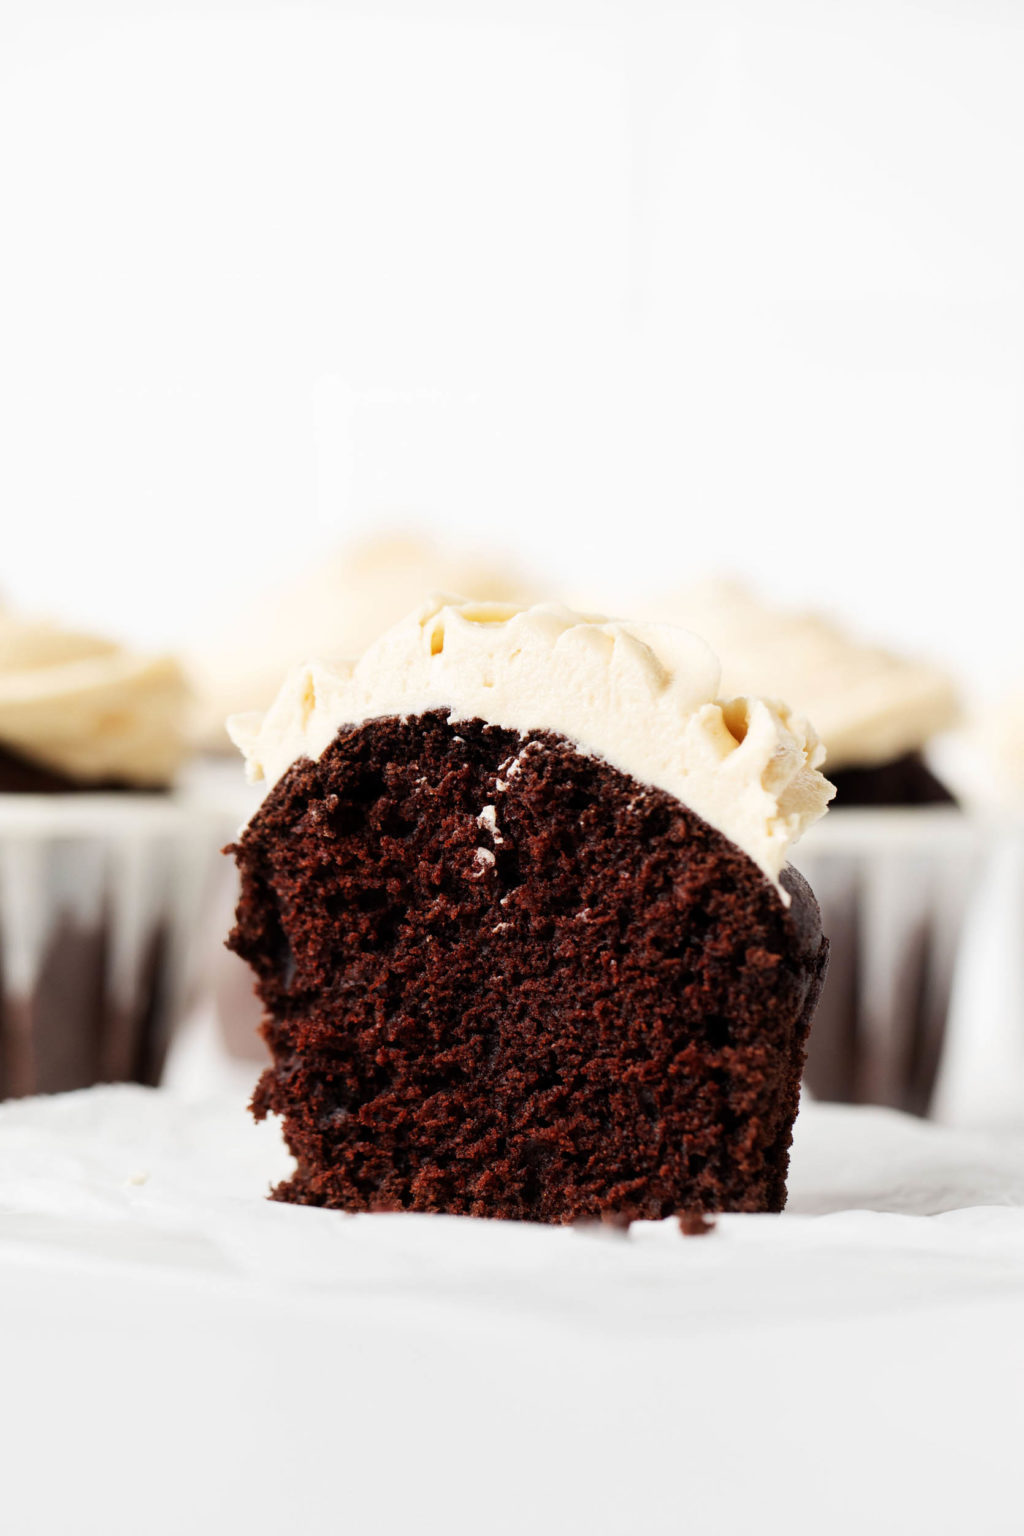 A vegan chocolate peanut butter cupcake has been sliced neatly in half. A cross section of the muffin is visible, with muffins that are still in their liners in the background.